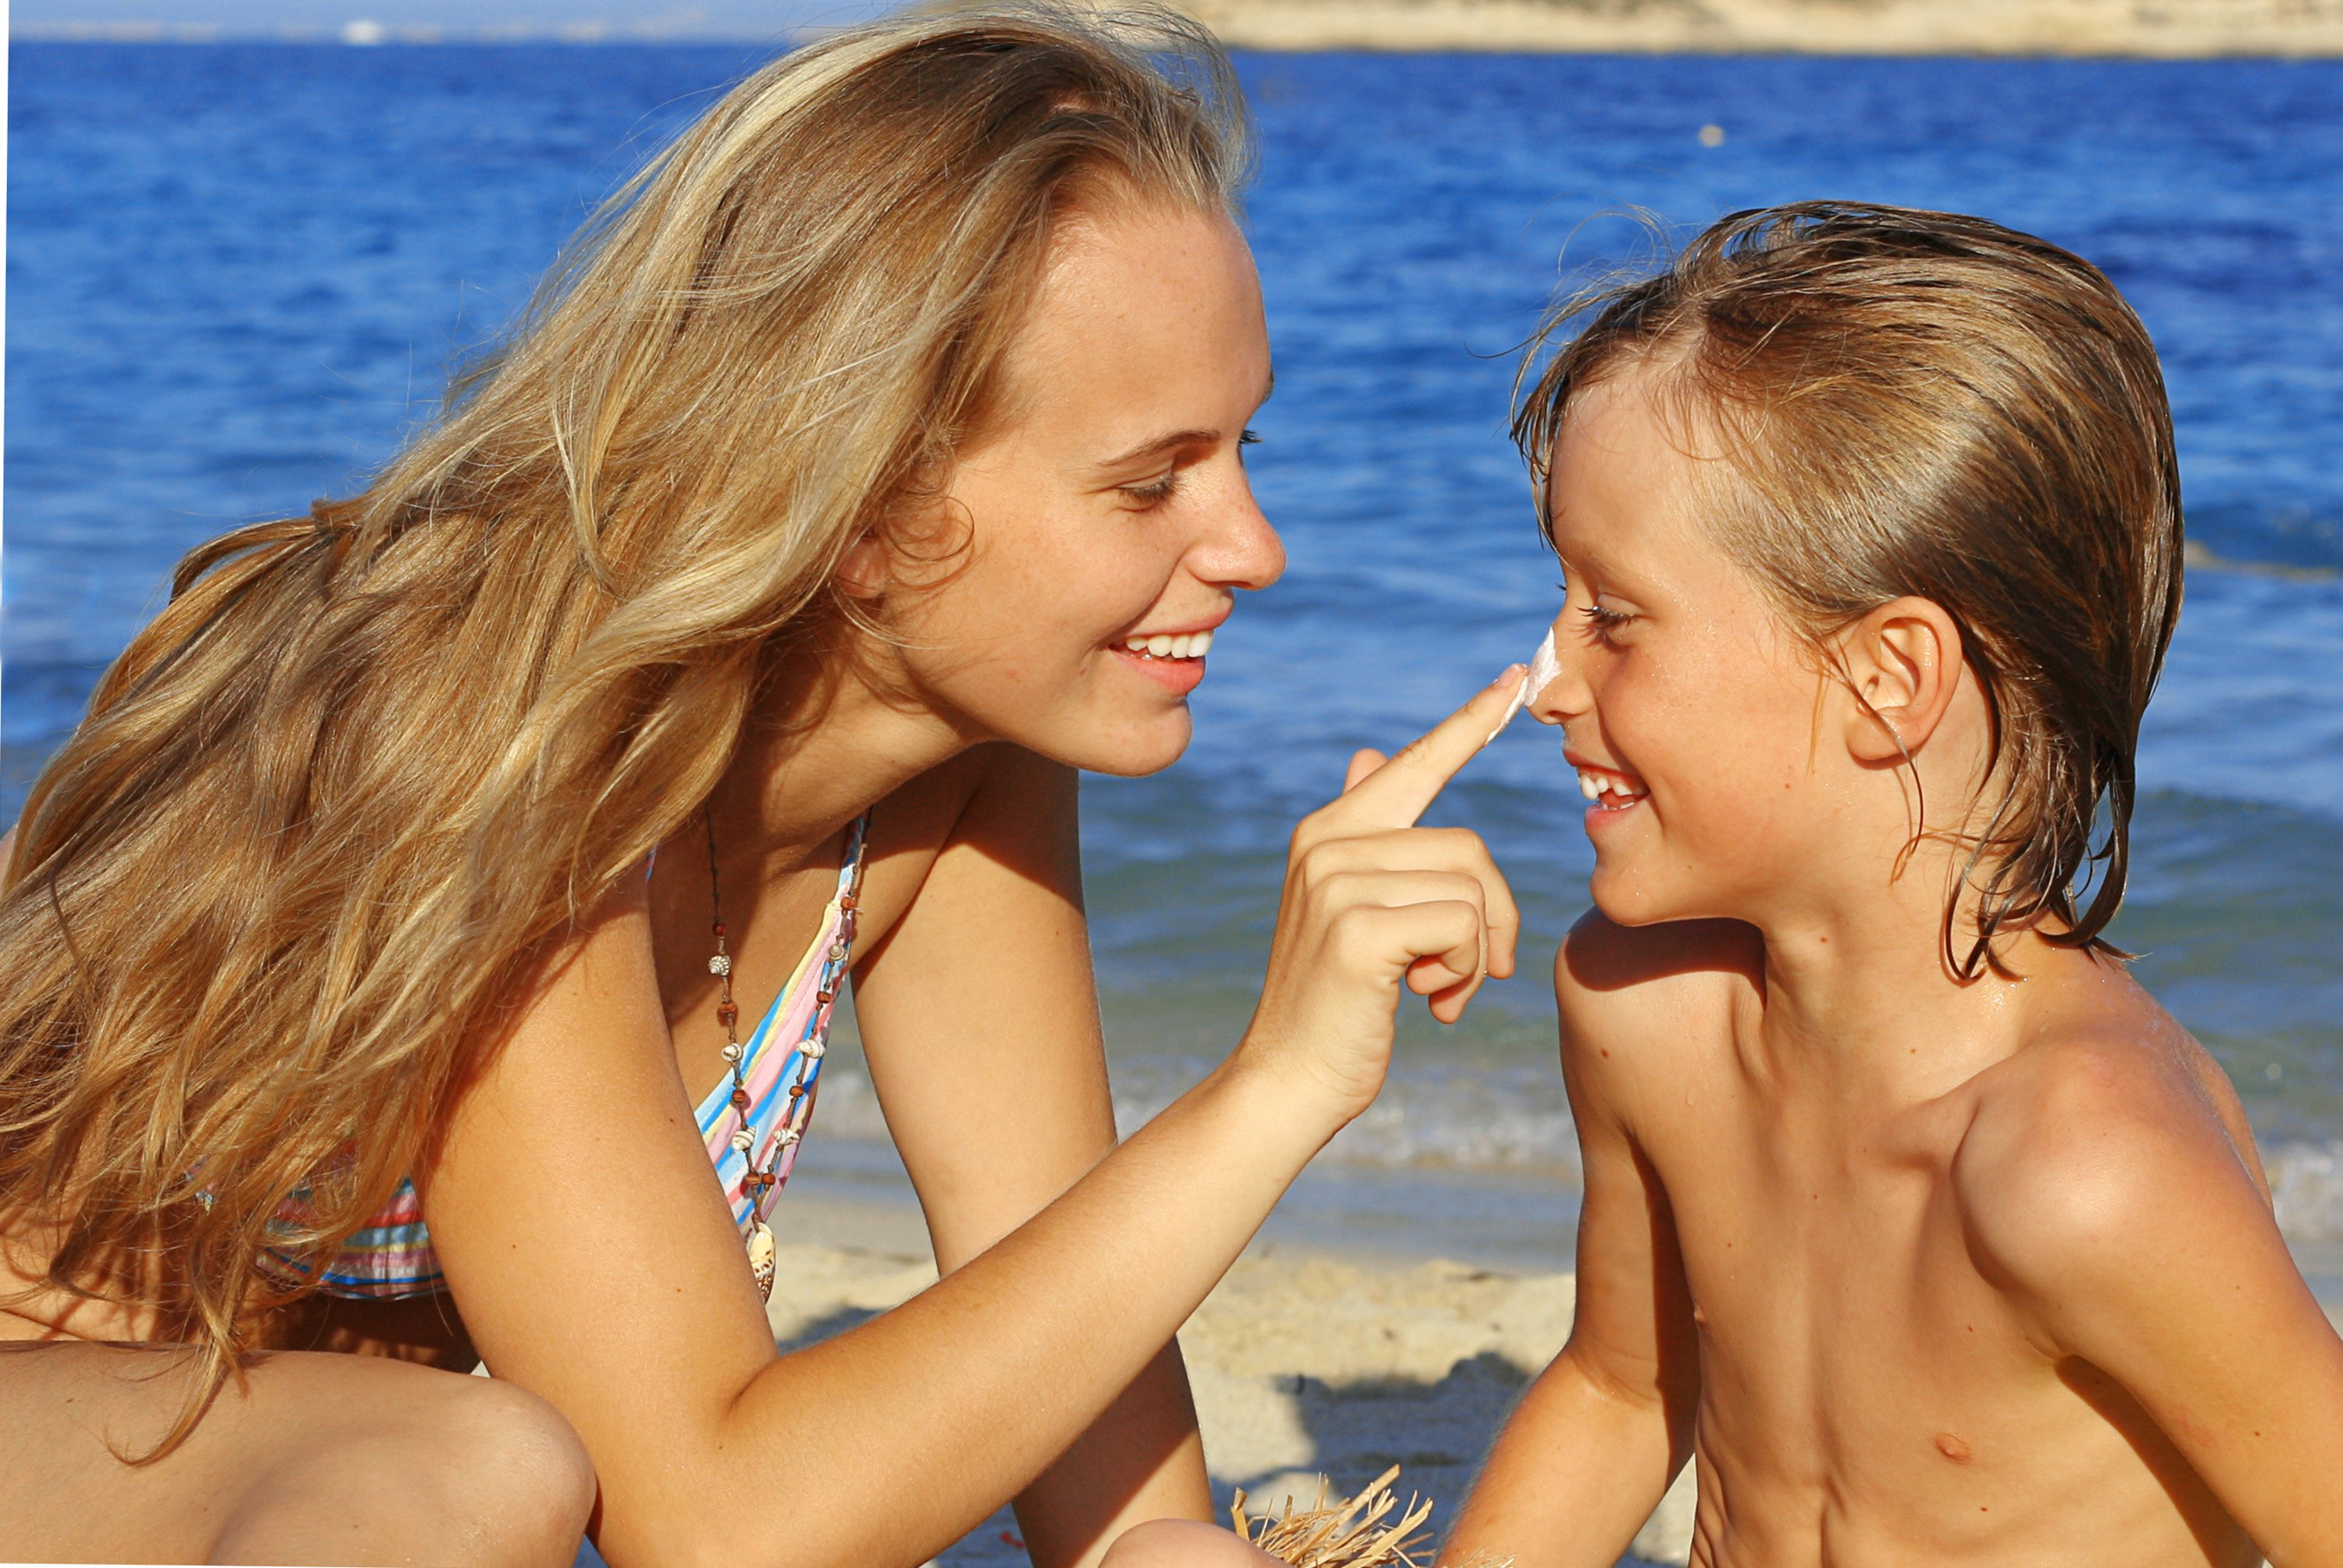 Protect your loved ones from tanning dangers